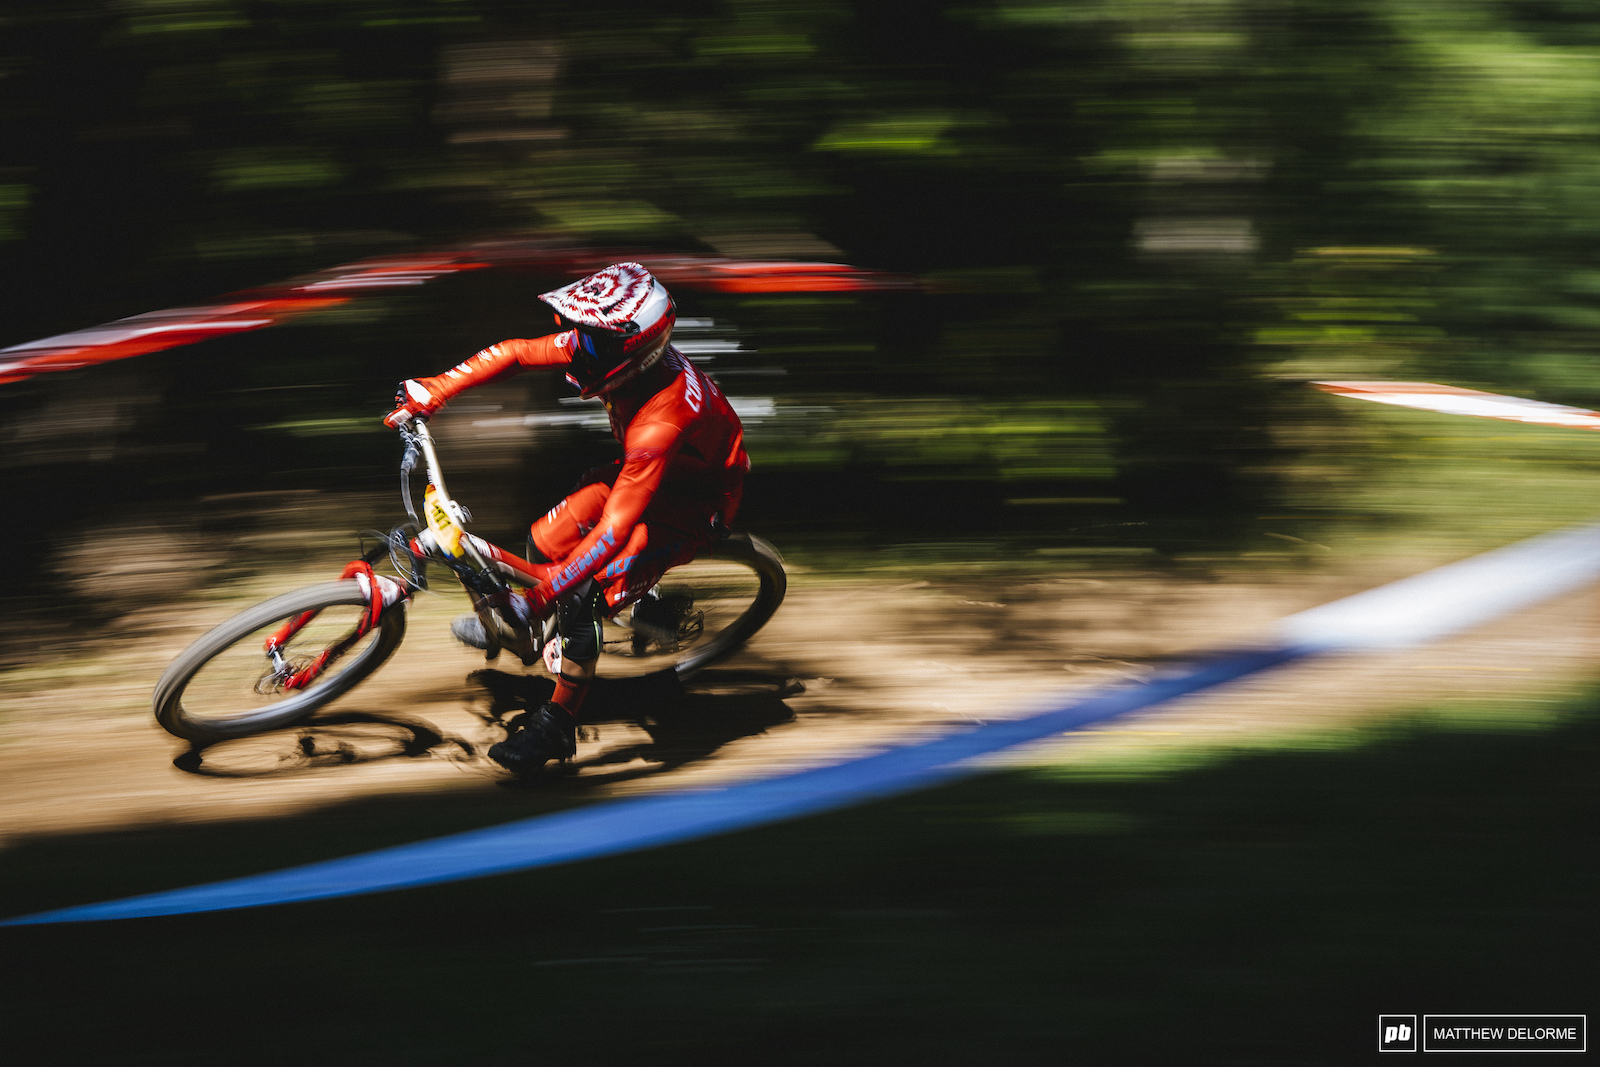 Antoine Vidal speeds through the forest in Val Di Fassa Italy